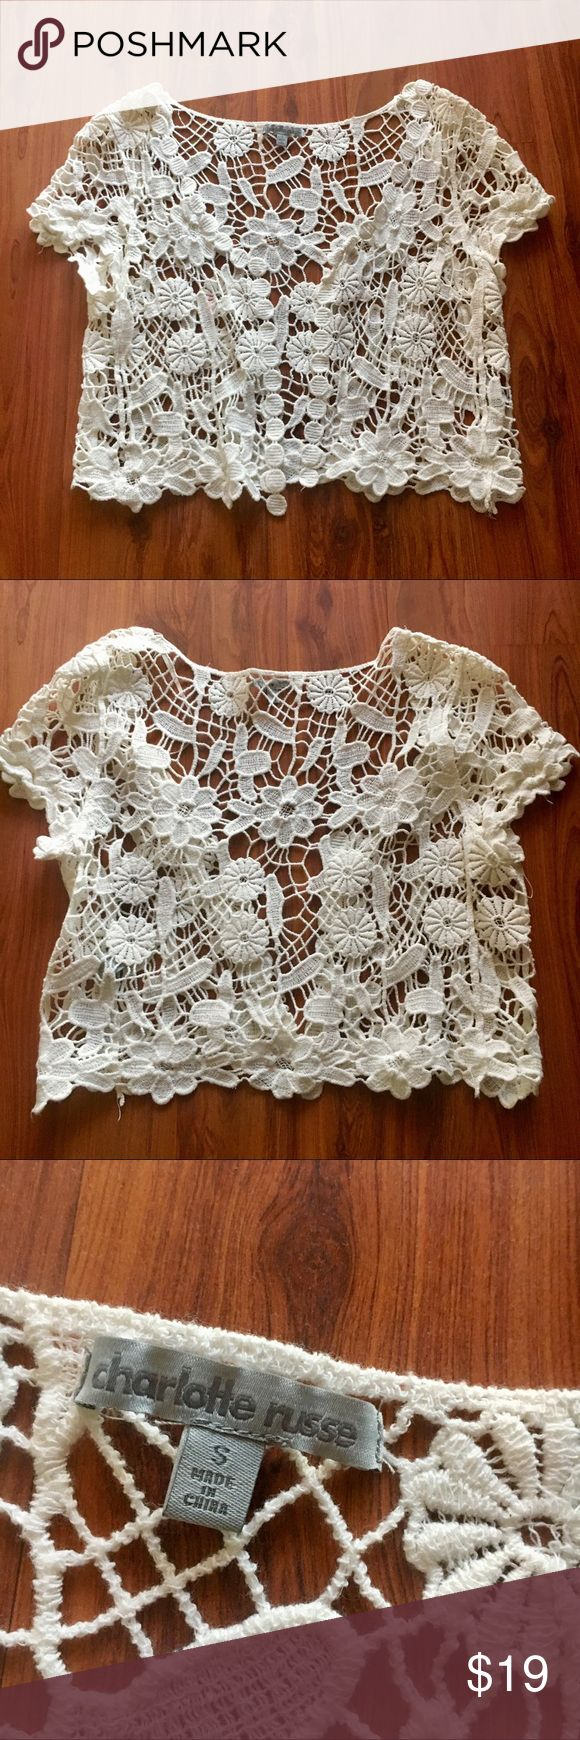 Charlotte Russe Crotchet Jacket ✌🏻 This Charlotte Russe crochet jacket is in perfect condition has only been worn once!  Perfect for year-round or for festivals!! ✌🏻  From a smoke free pet free home 🏡 Charlotte Russe Jackets & Coats Vests